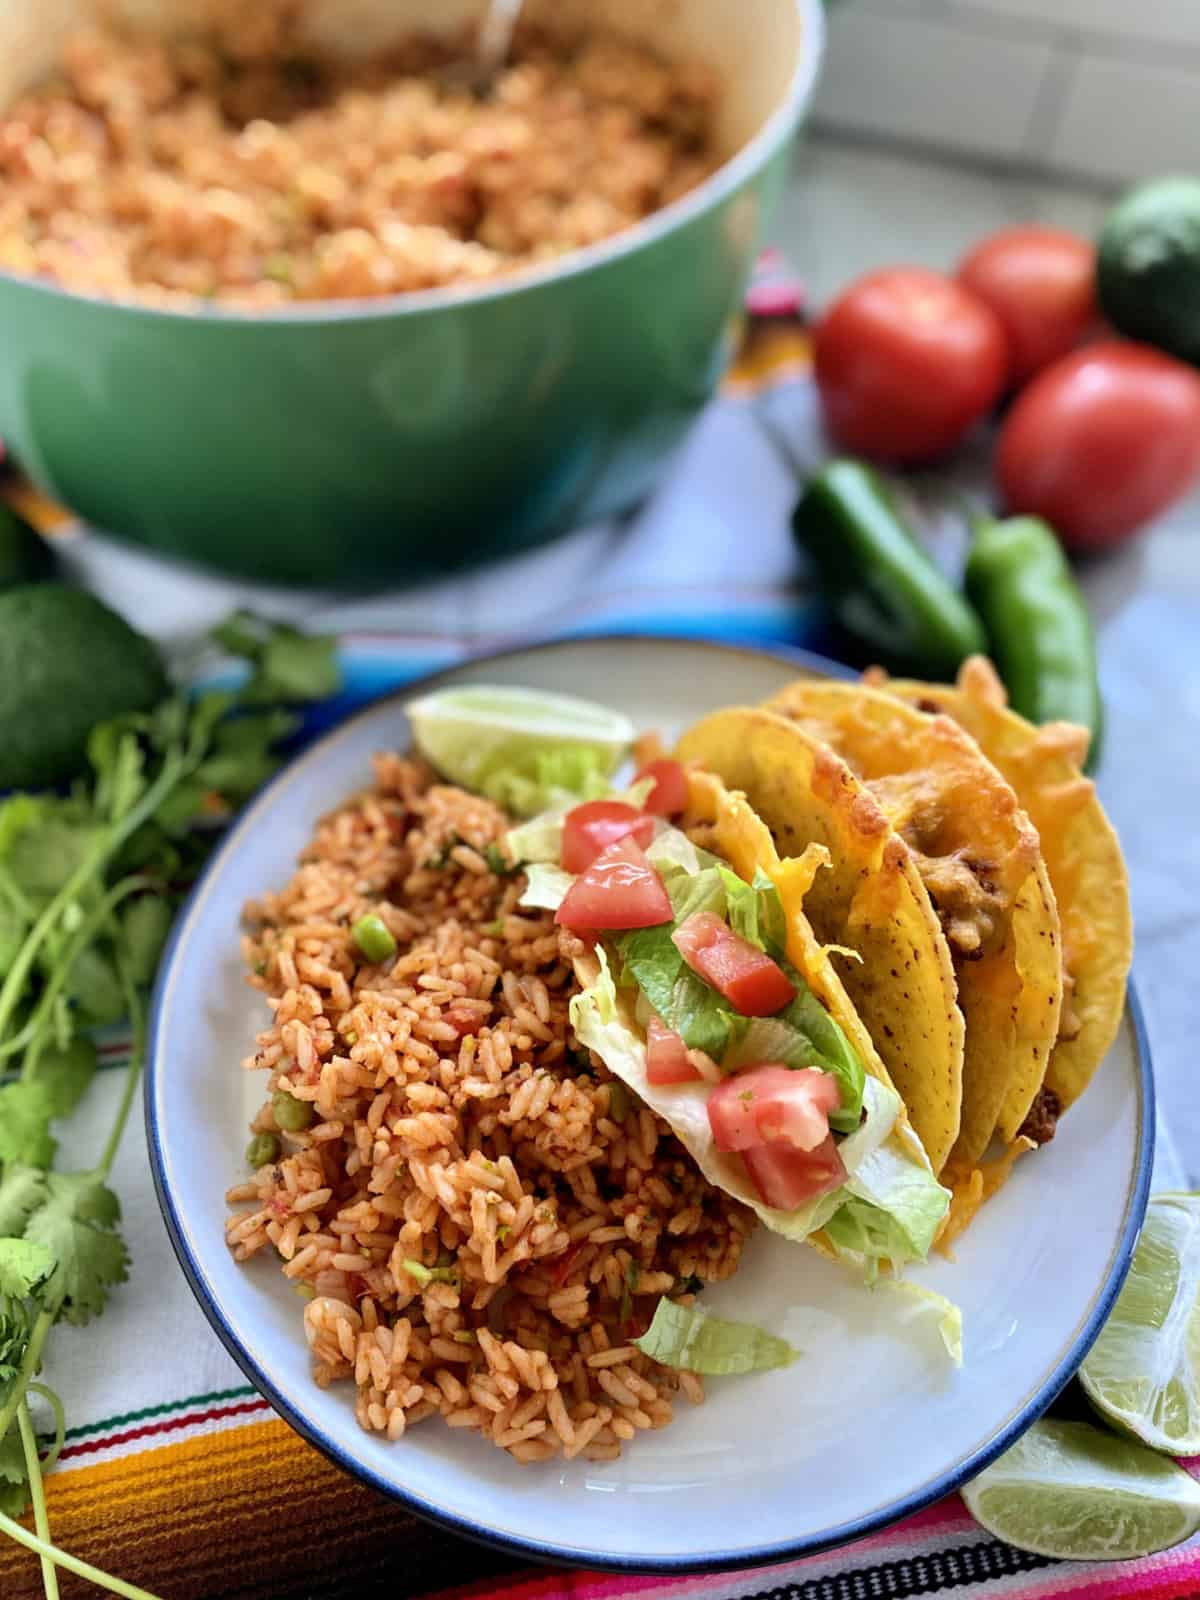 White plate filled with three tacos, Mexican Rice and vegetables in the background.